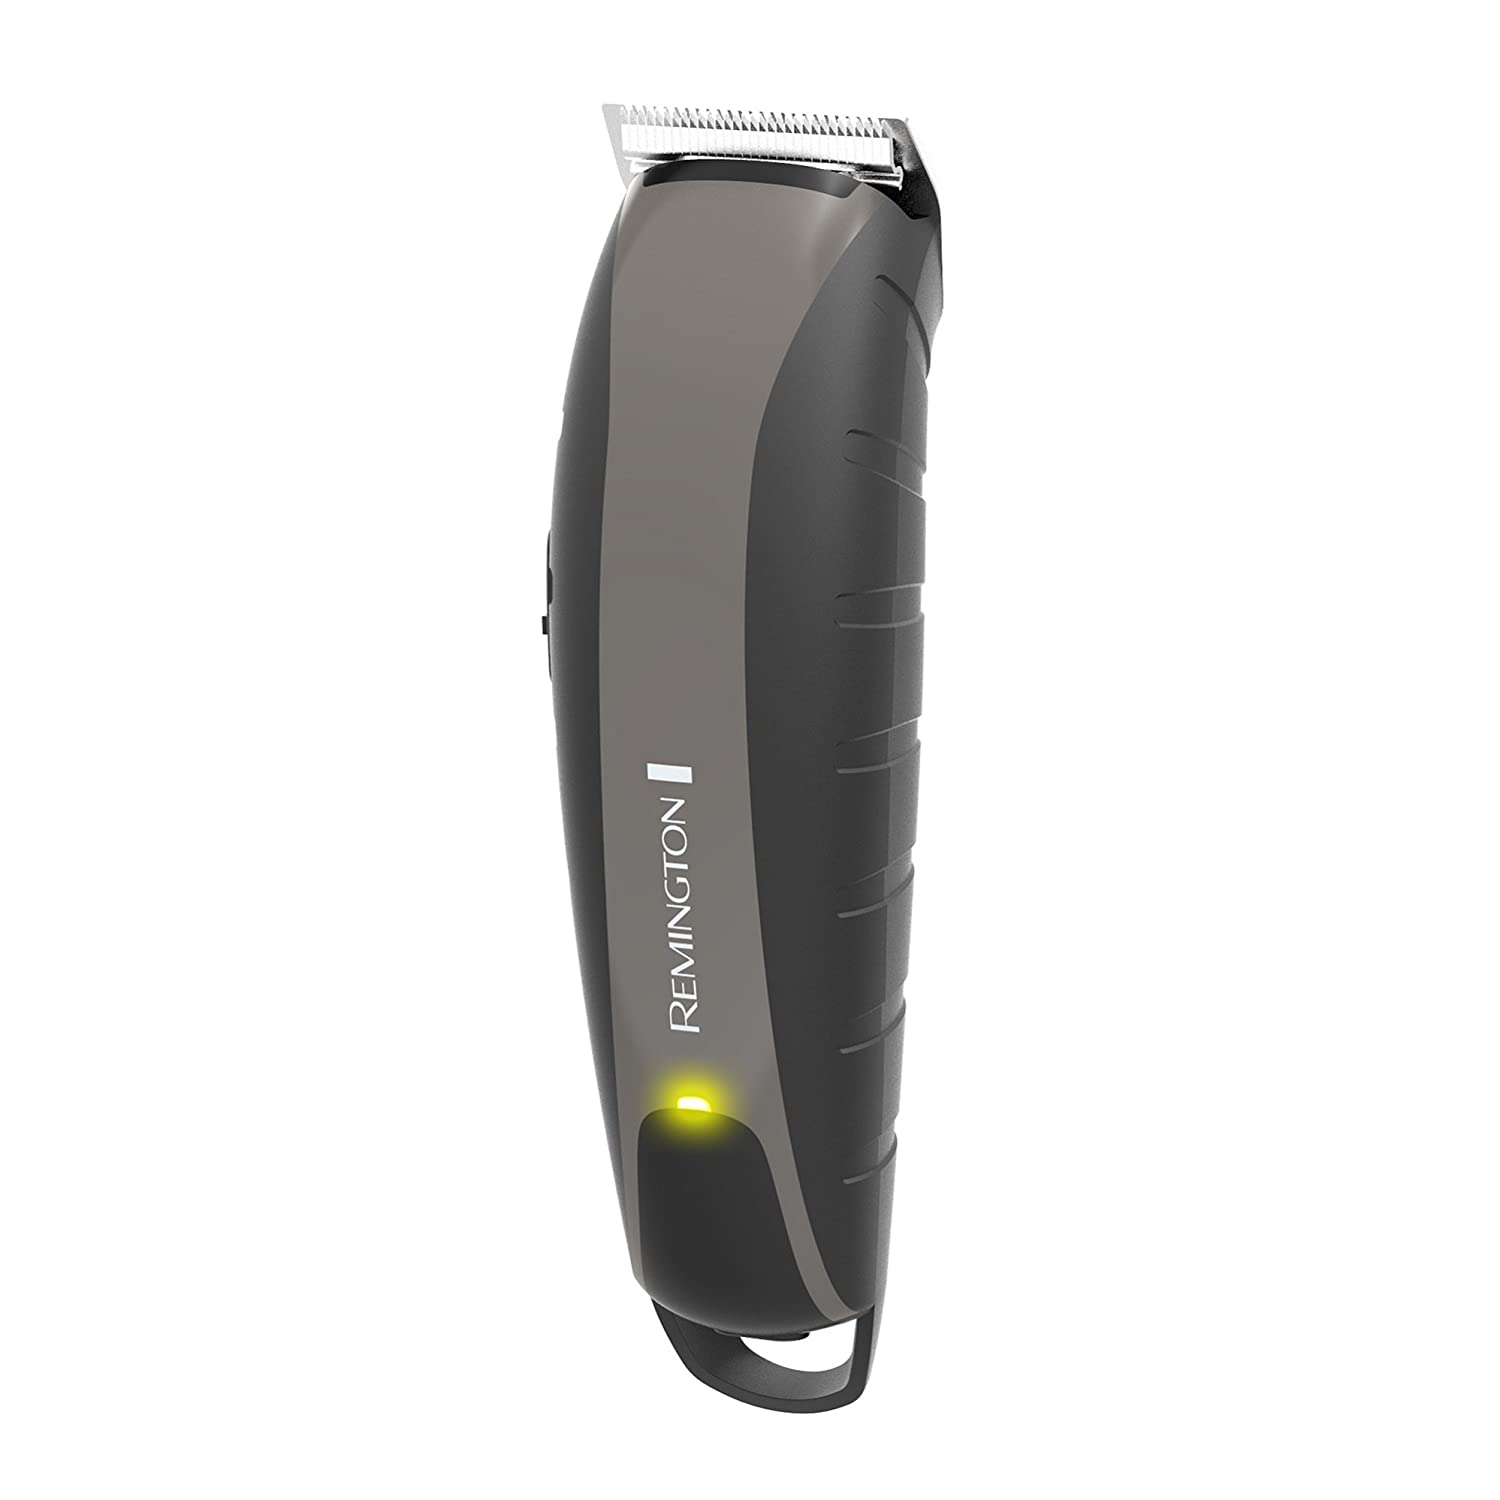 Remington HC5870 Cordless Virtually Indestructible Barbershop Hair Clippers, Hair Trimmer